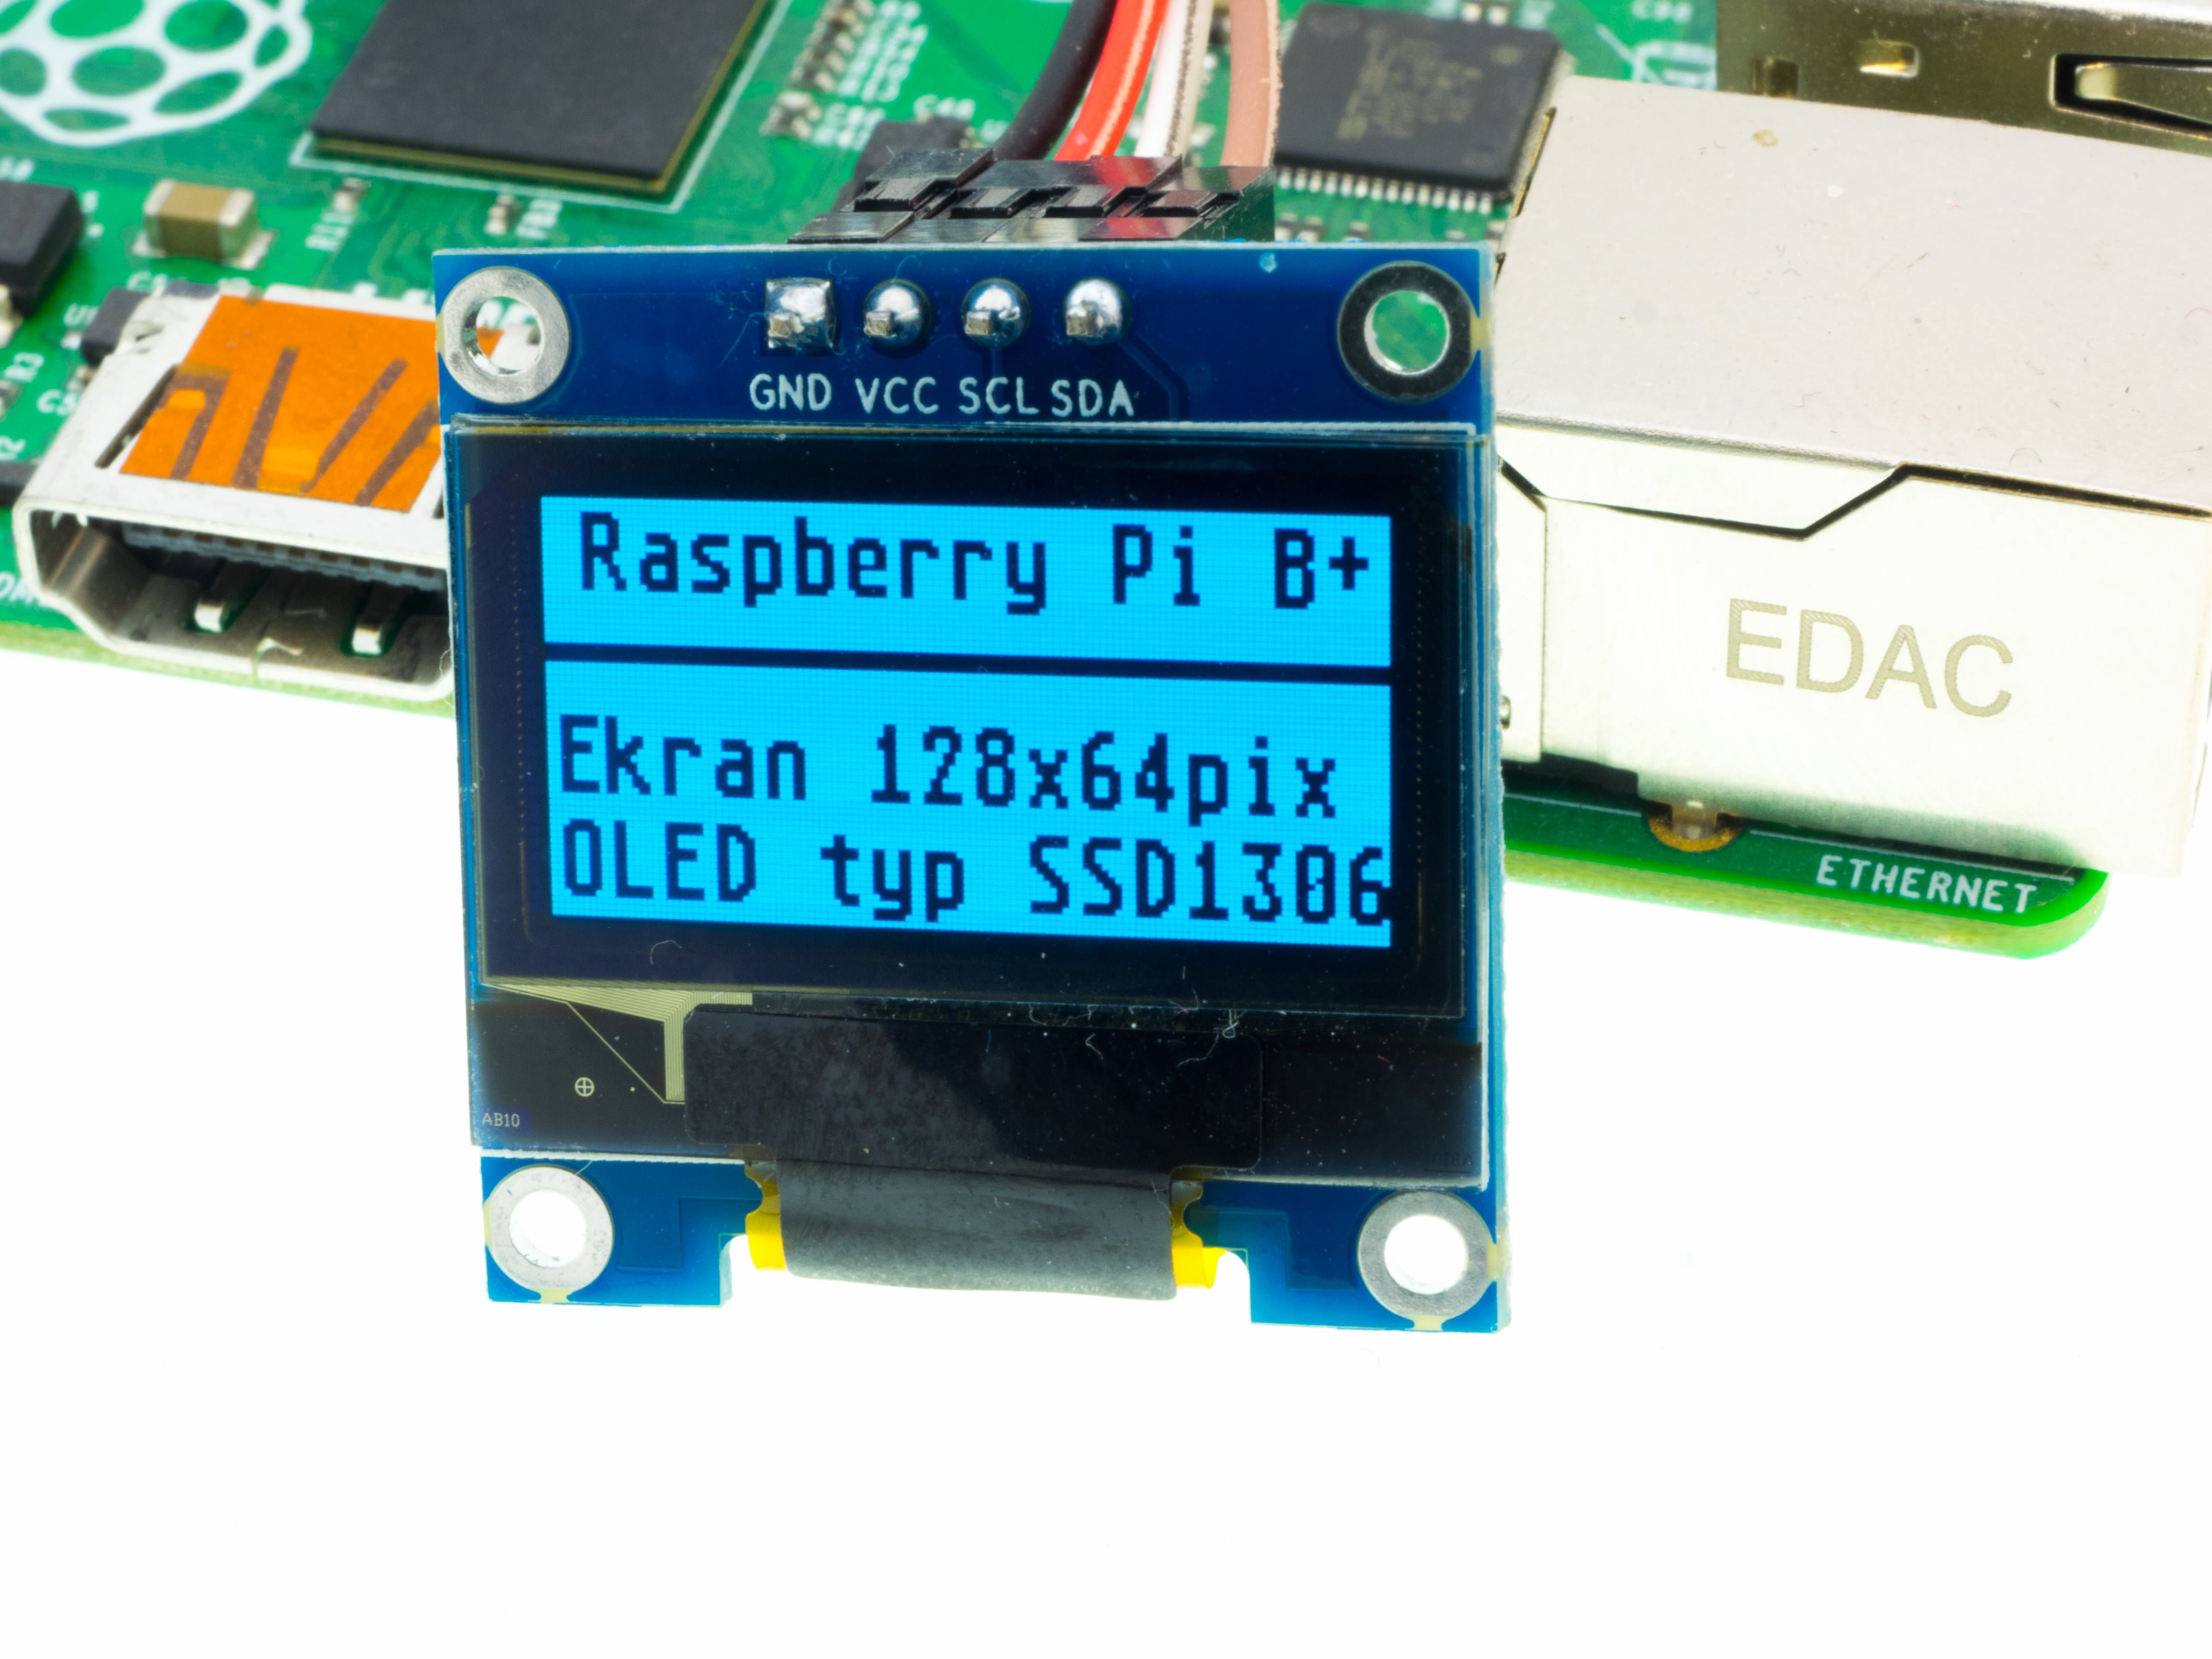 Oled Display Lets Play With The Technology Raspberry Pi 2 Wiringpi I2c Wywietlacz Ssd1306 Tekst